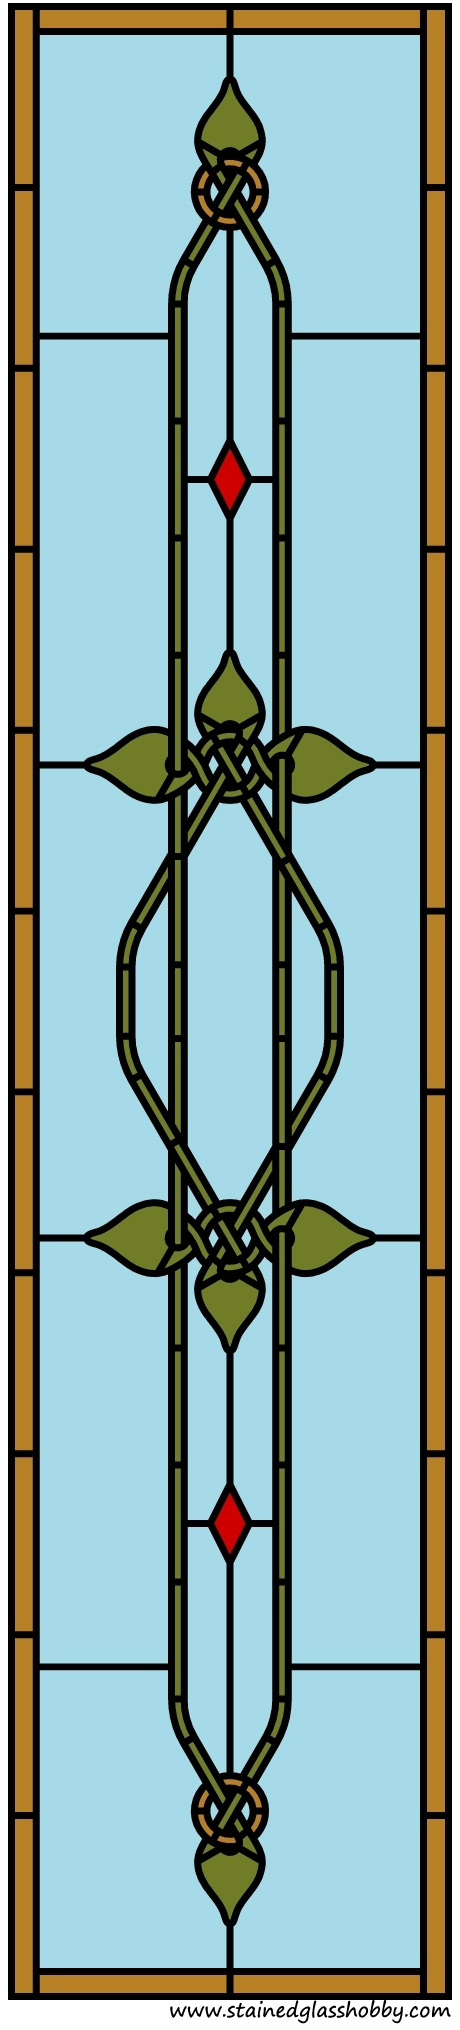 Celtic stained glass door panel transoms pinterest celtic celtic stained glass making pattern for door panels planetlyrics Images